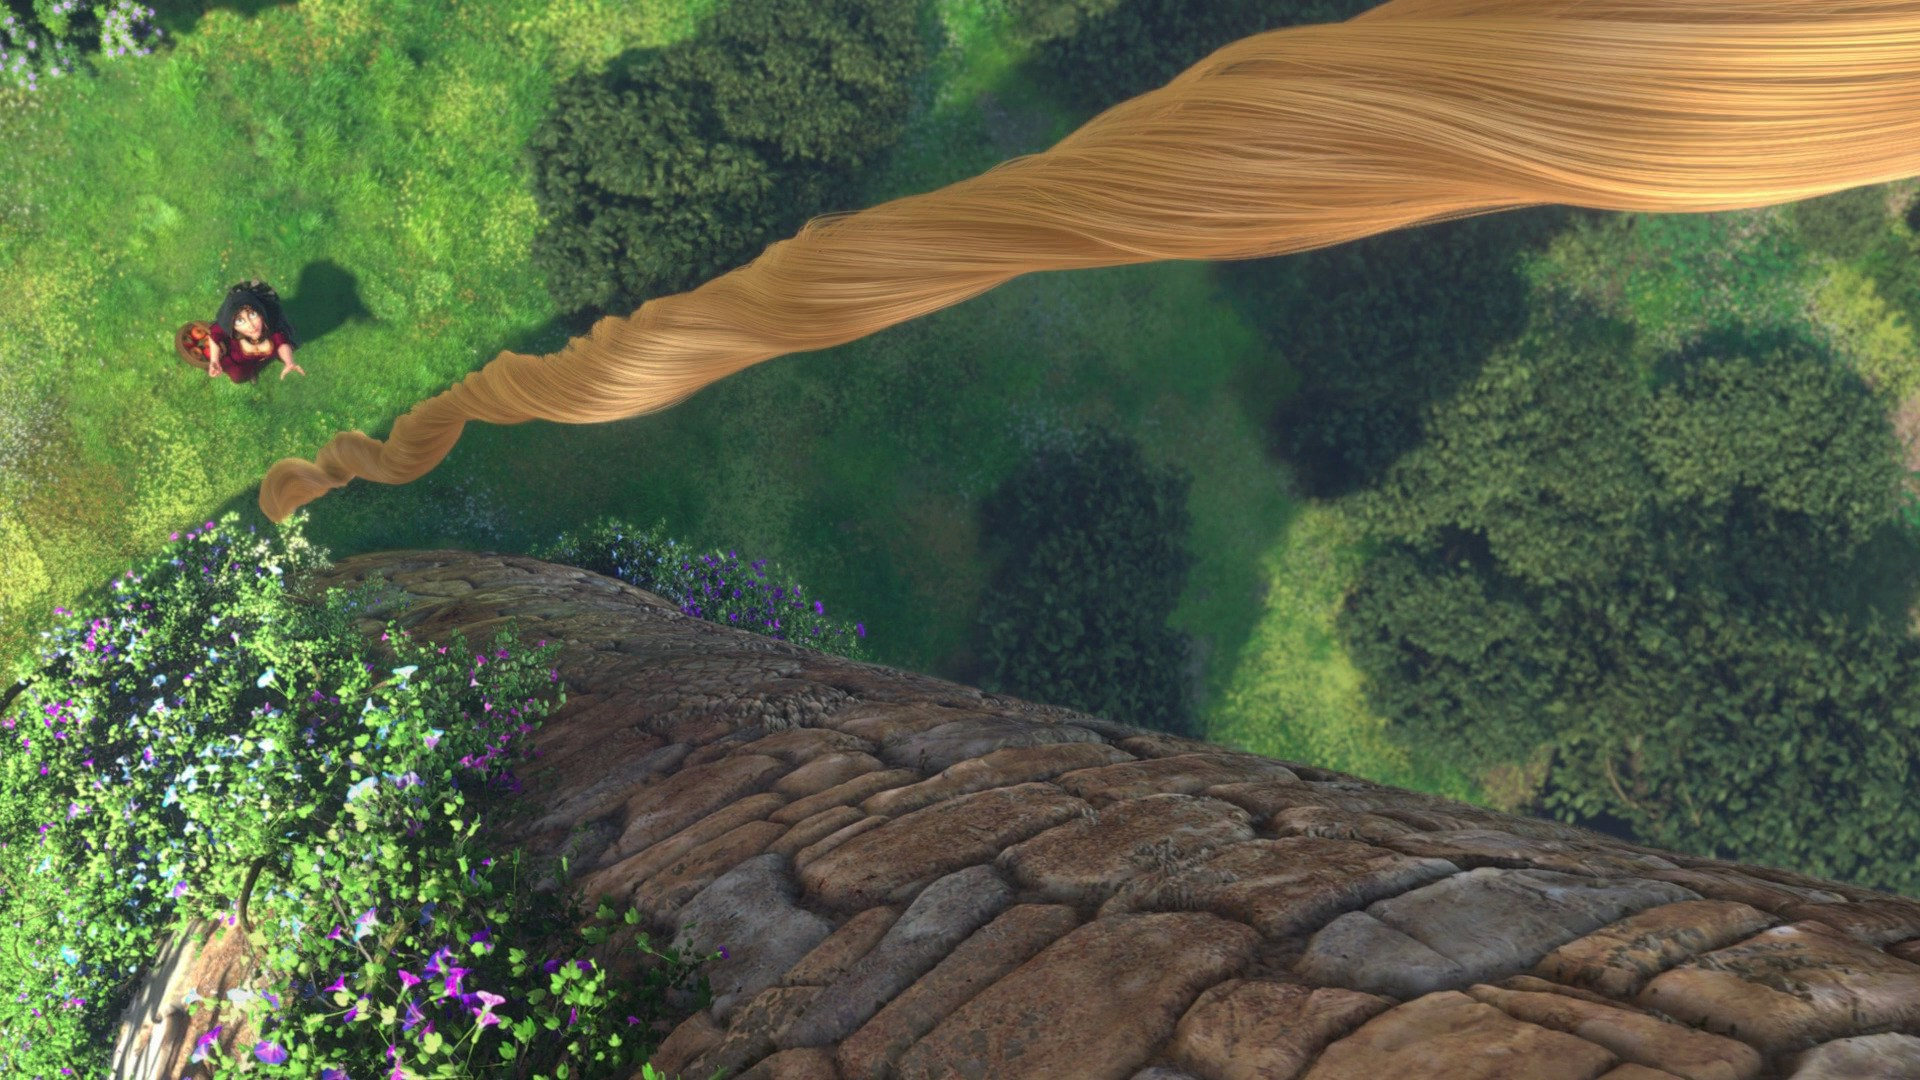 File:Rapunzel's hair.jpg